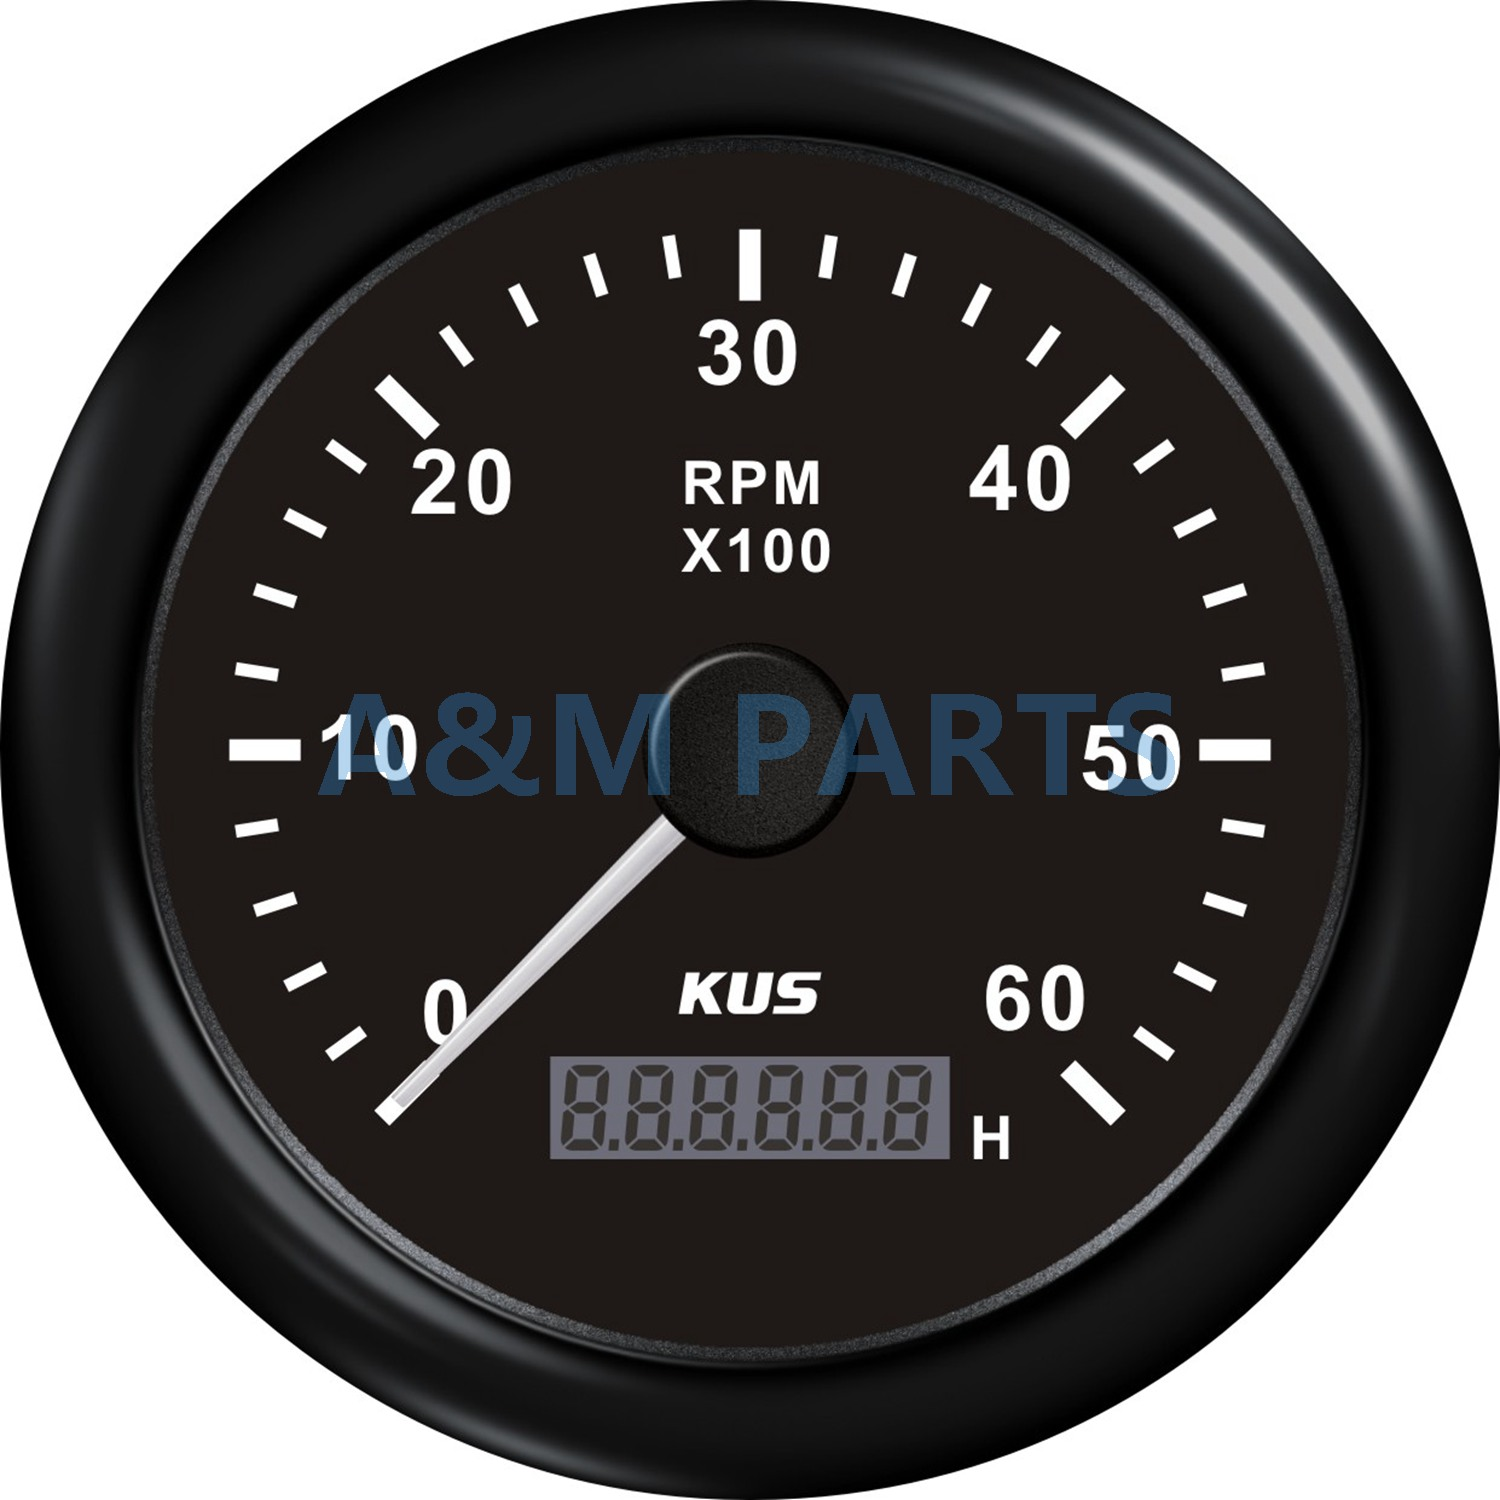 KUS Boat RPM Meter Marine Generator Tachometer With LCD Hourmeter 12/24V 0-6000 RPM 85mm kus marine outboard tachometer with led hourmeter boat truck car rv waterproof rpm meter 6000 rpm 85mm speed ration 1 10